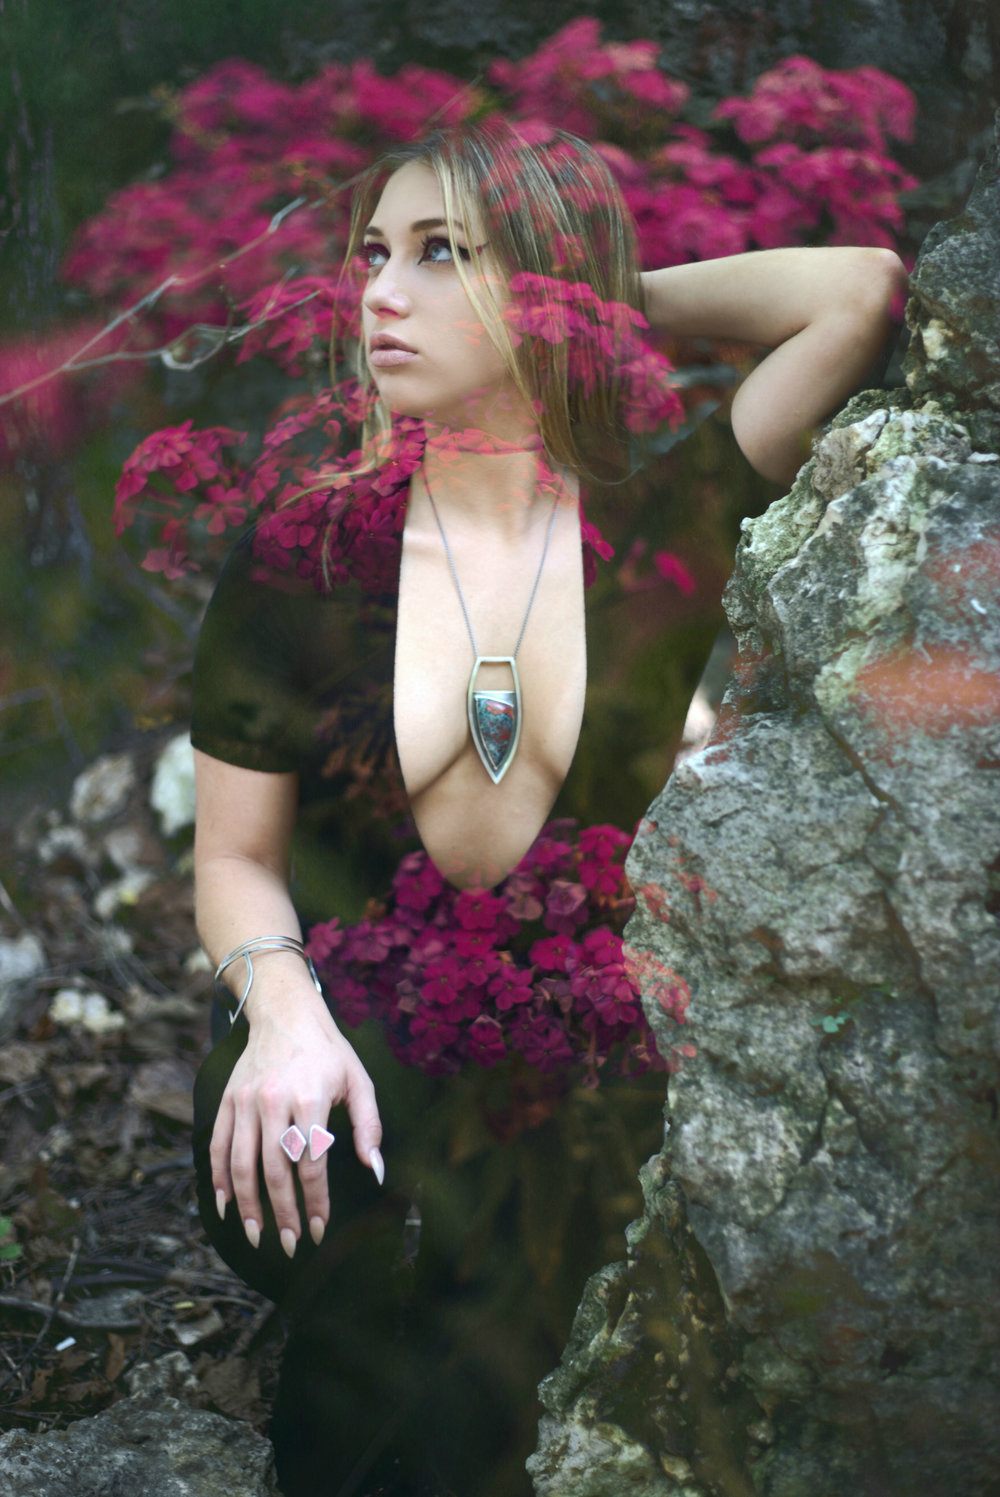 meritmade whitney smith wooinwonderland photoshoot silversmith jewelry double exposure